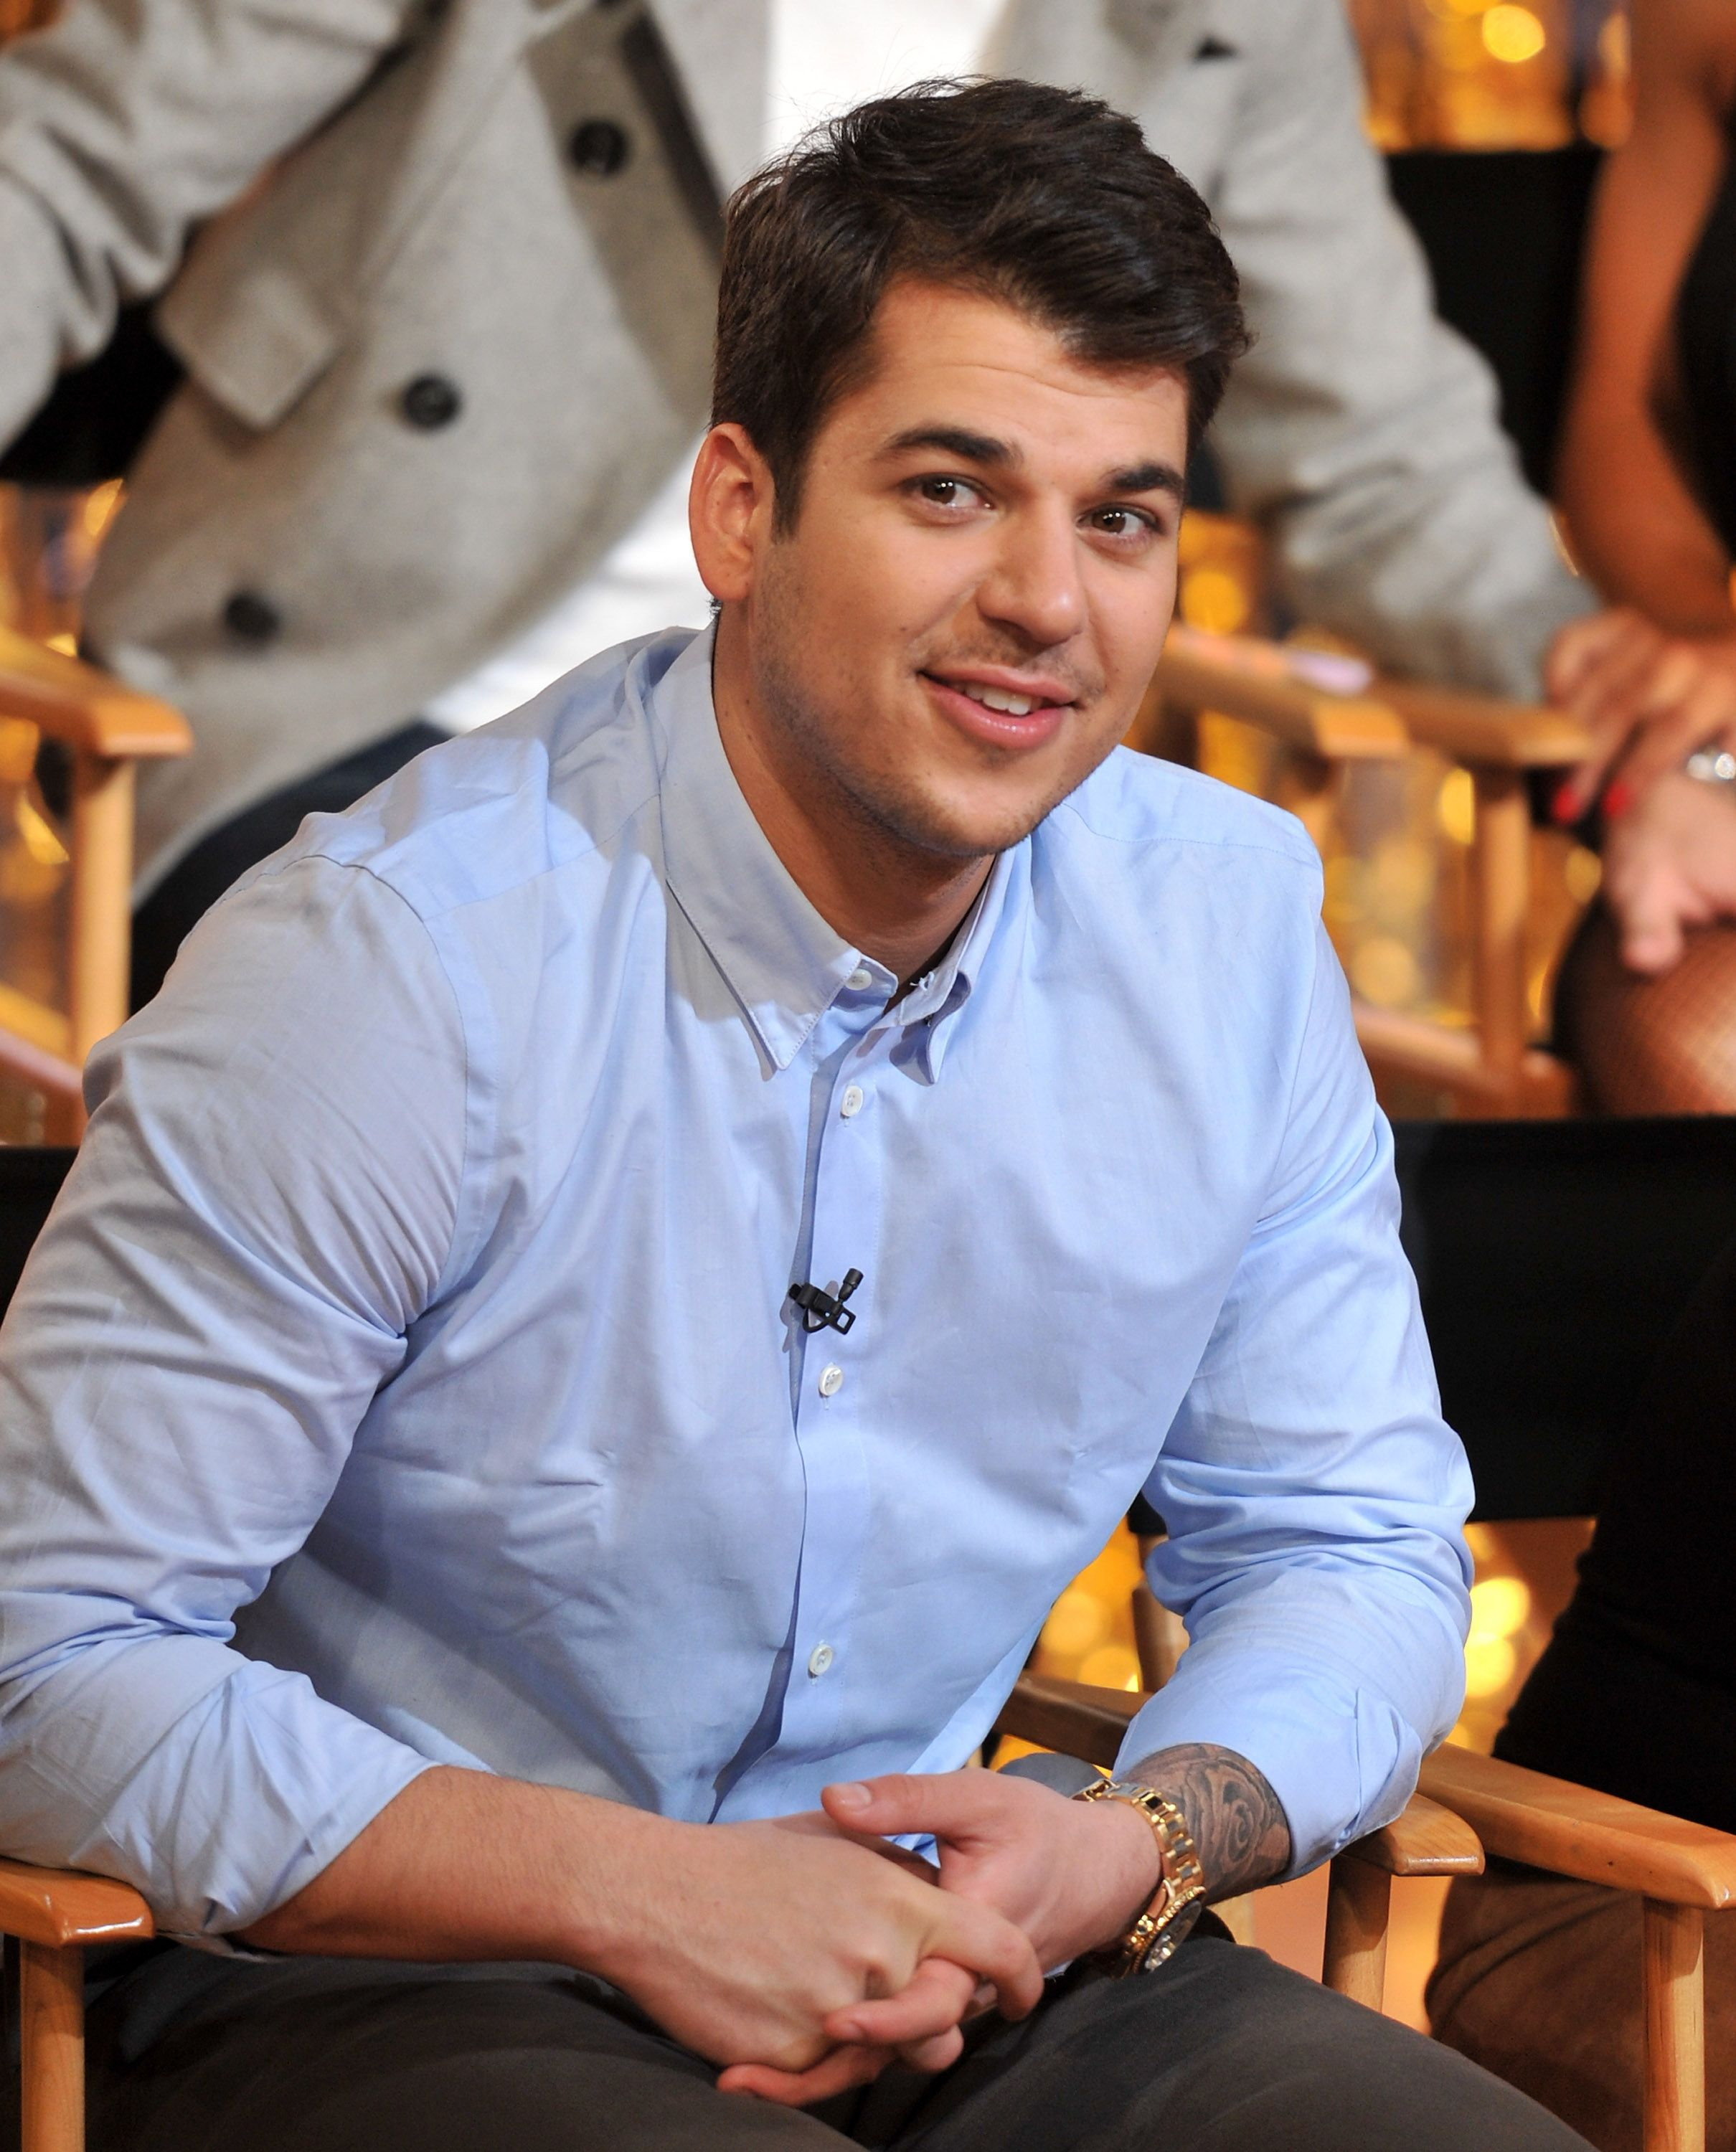 A photo of Rob Kardashian at an event   Photo: Getty Images